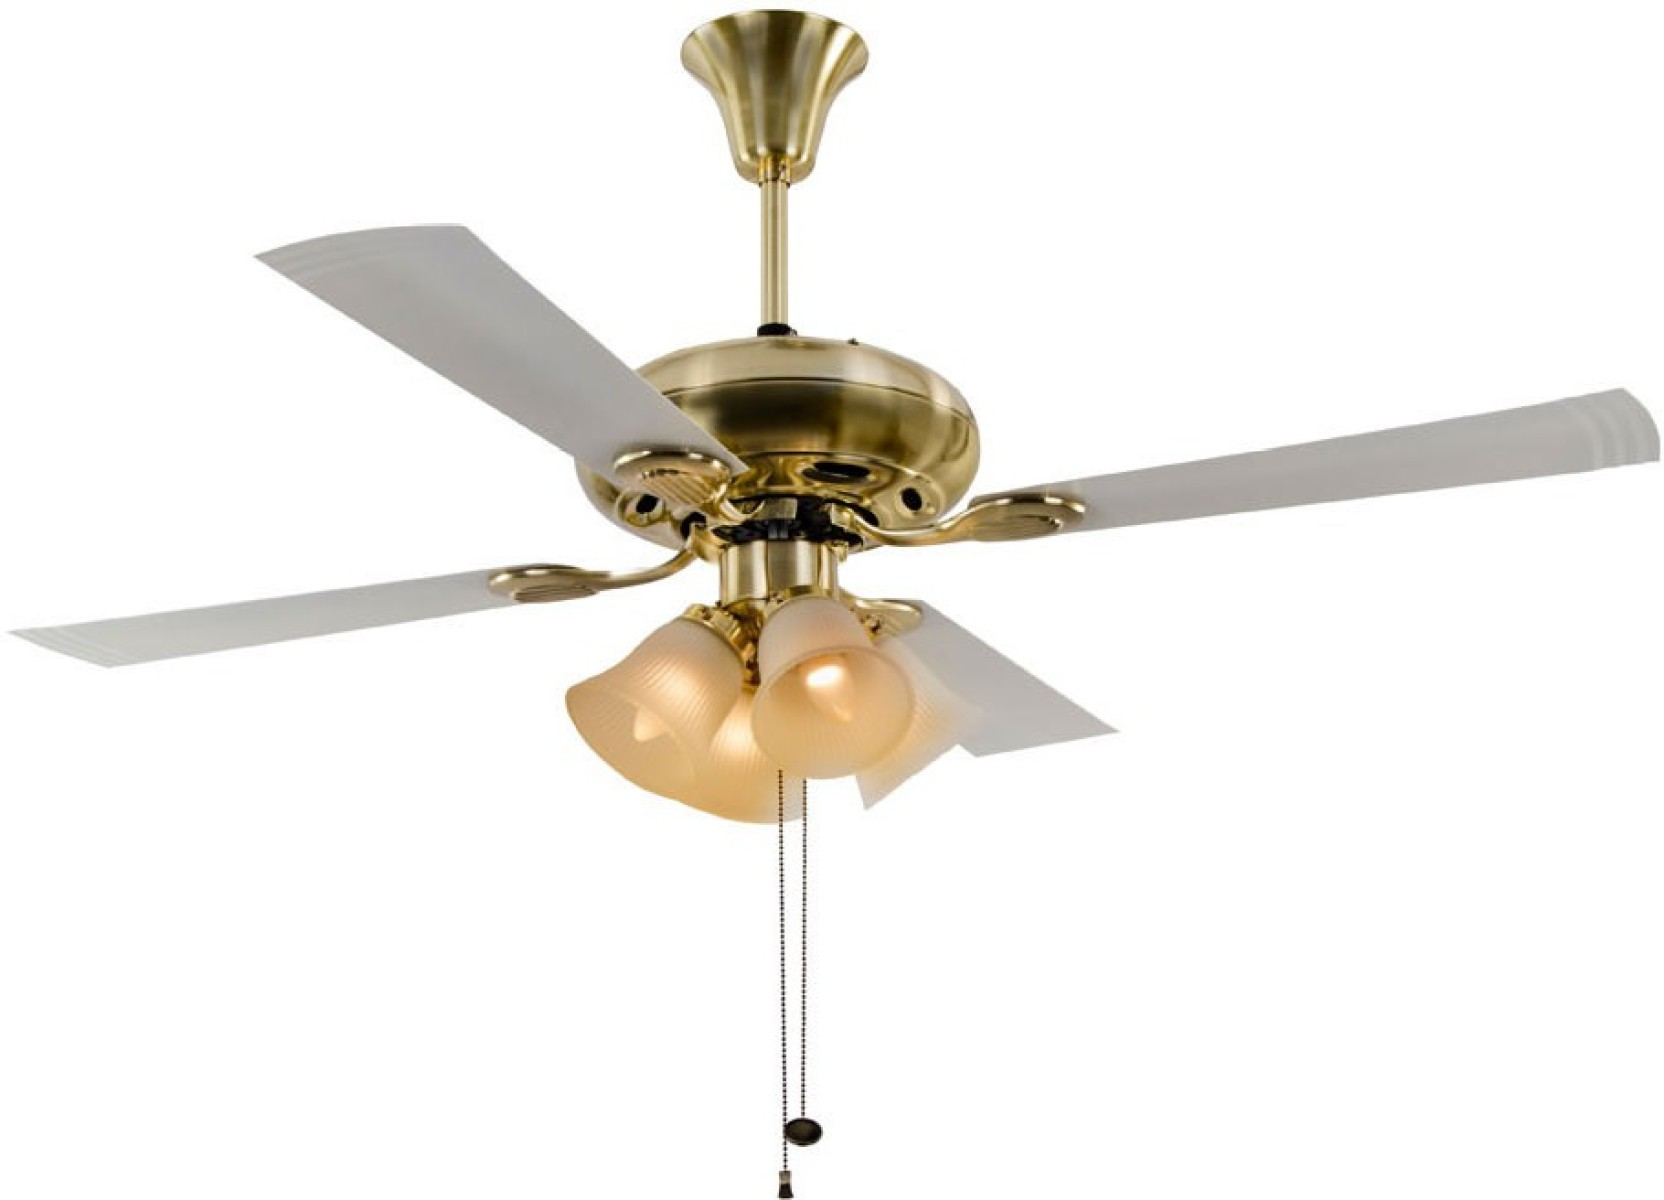 Usha 1280 mm Fontana Orchid Gold CF 4 Blade Ceiling Fan Price in